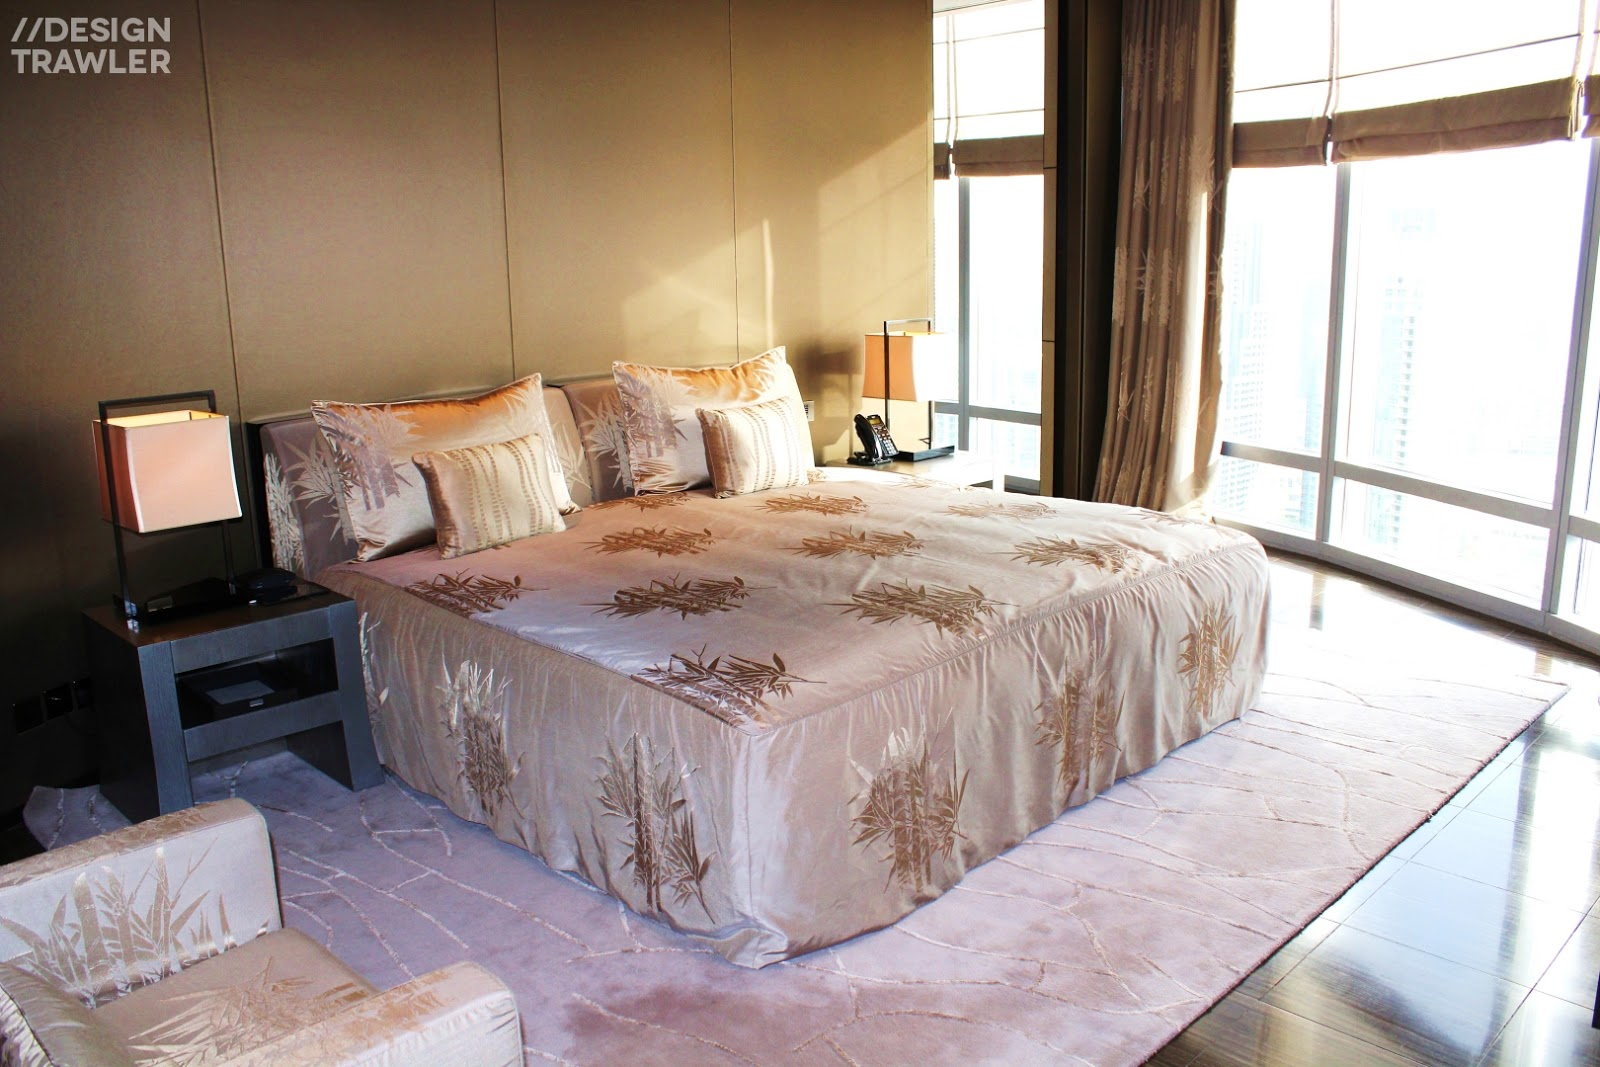 Design Trawler Destination Dubai Armani Hotel Is A Triumph - Armani bedroom design